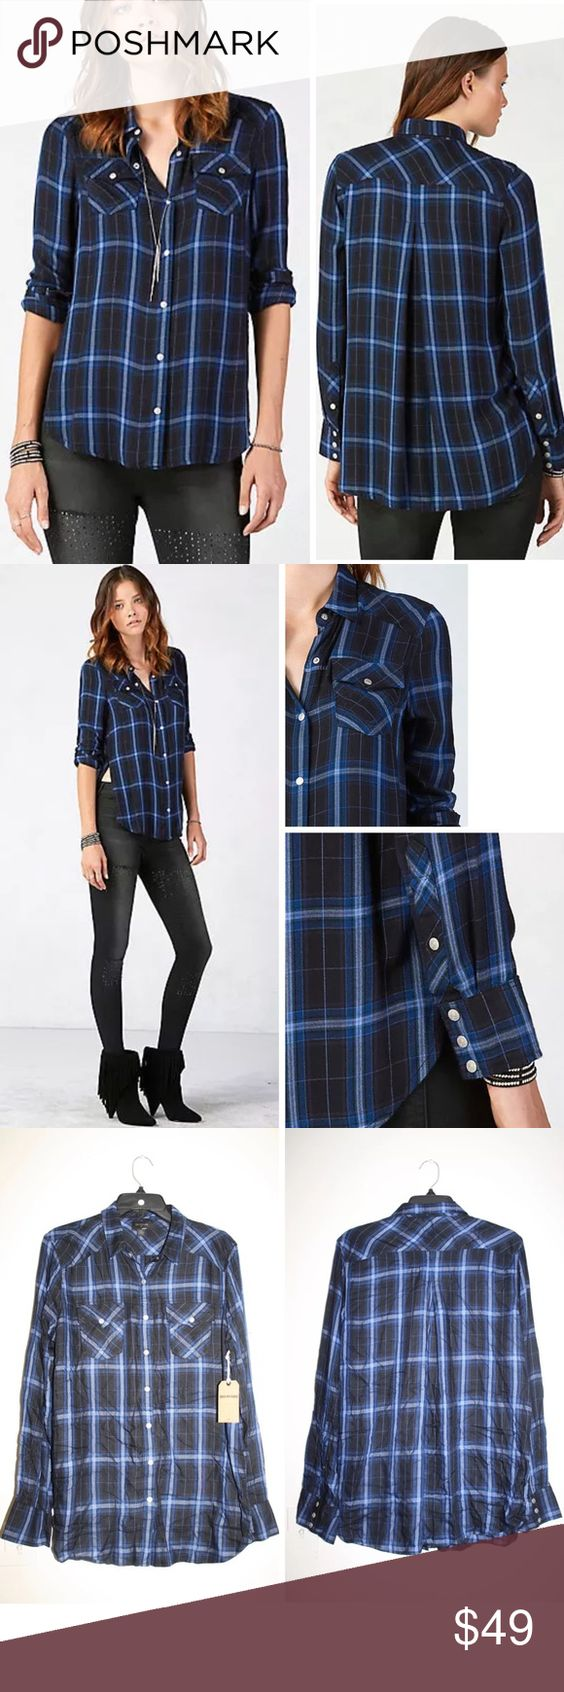 "$132 TRUE RELIGION GEORGIA PLAID BUTTON DOWN SHIRT Authentic TRUE RELIGION relaxed georgia plaid shirt  $132 retail, new with tags!  Our signature Georgia shirt for women in a bold, yet ultra-soft, plaid features ruching detail and a step-hem silhouette that's longer in the back.  Women's shirt Relaxed fit 100% rayon Imported Size Large; armpit to armpit flat 21"", length in back 30.5"" True Religion Tops Button Down Shirts"